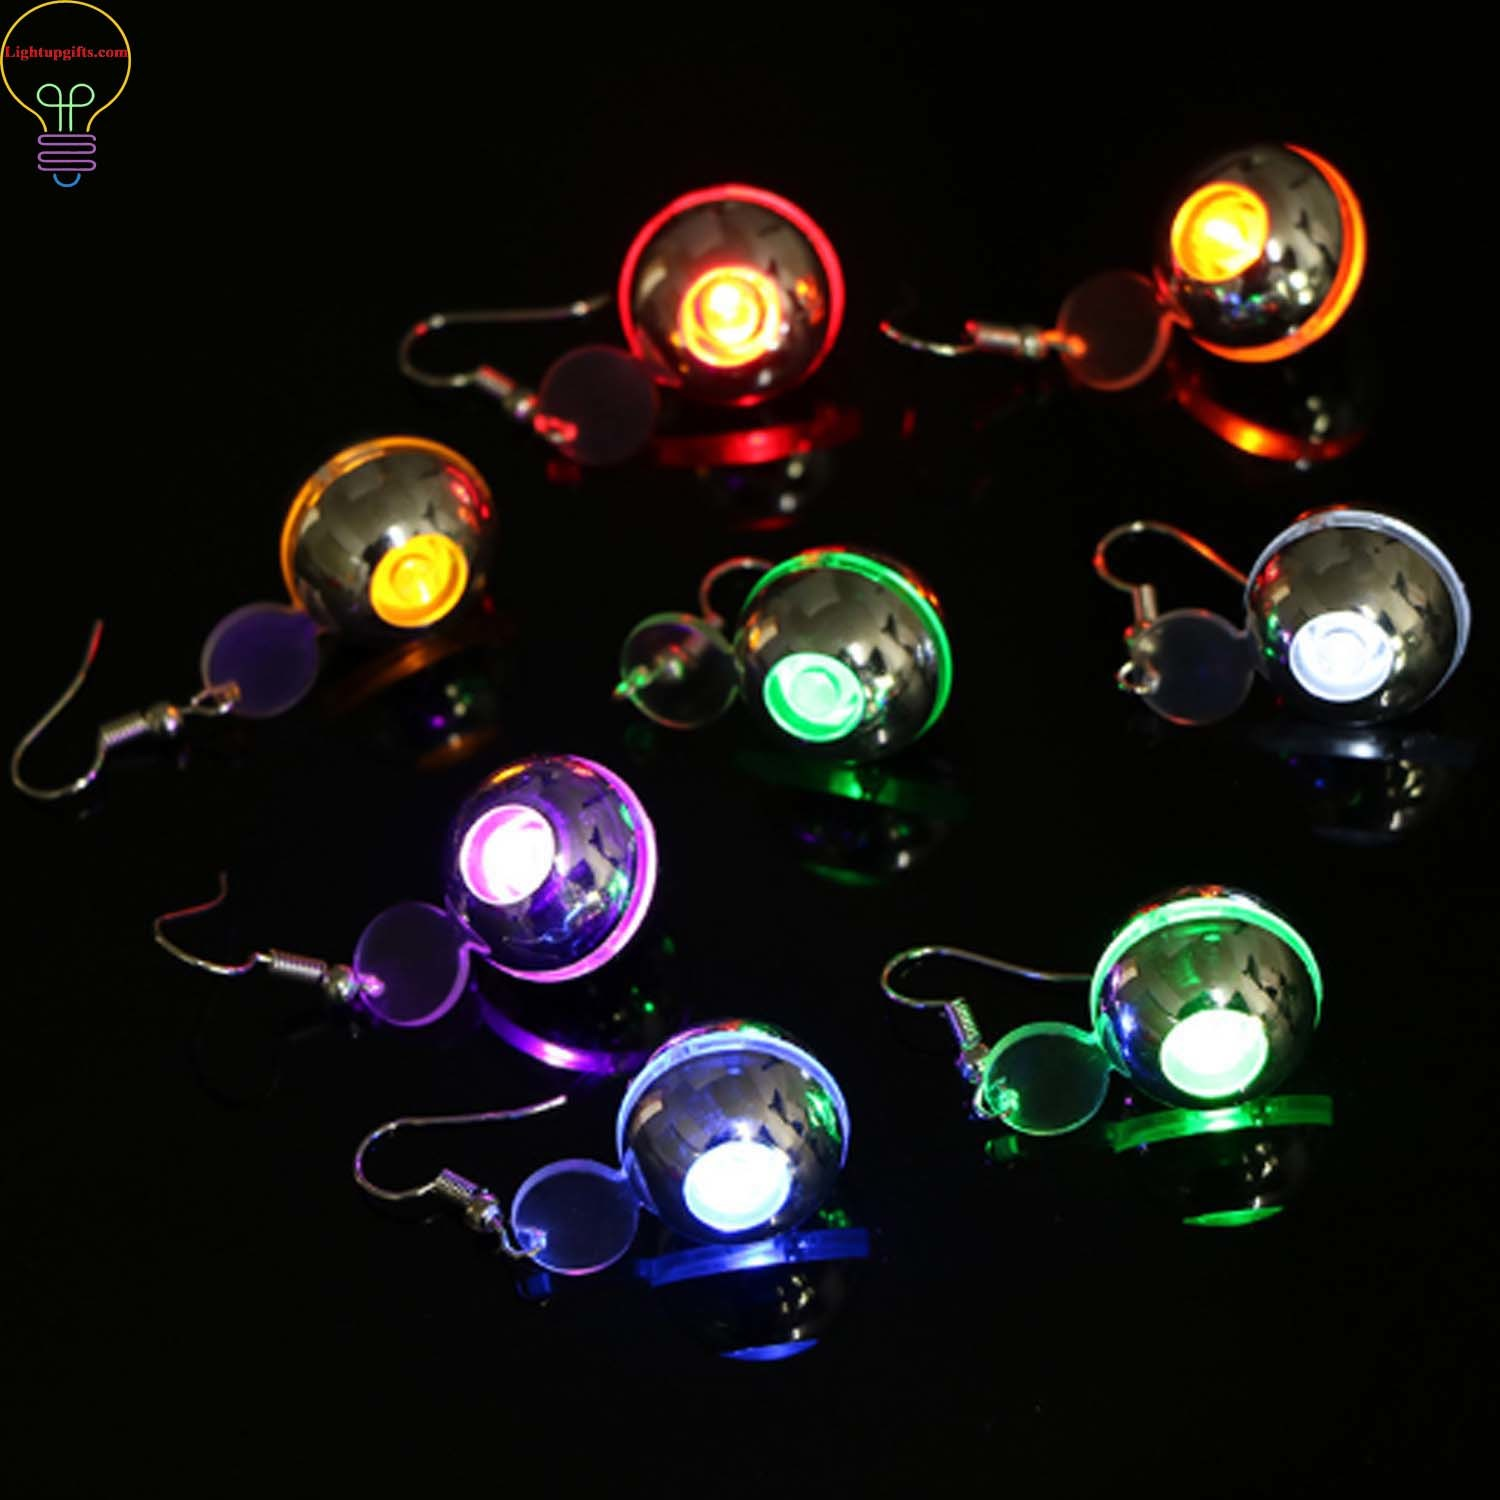 Led Earrings Led Flashing Circular Led Earrings Light Up Eardrop